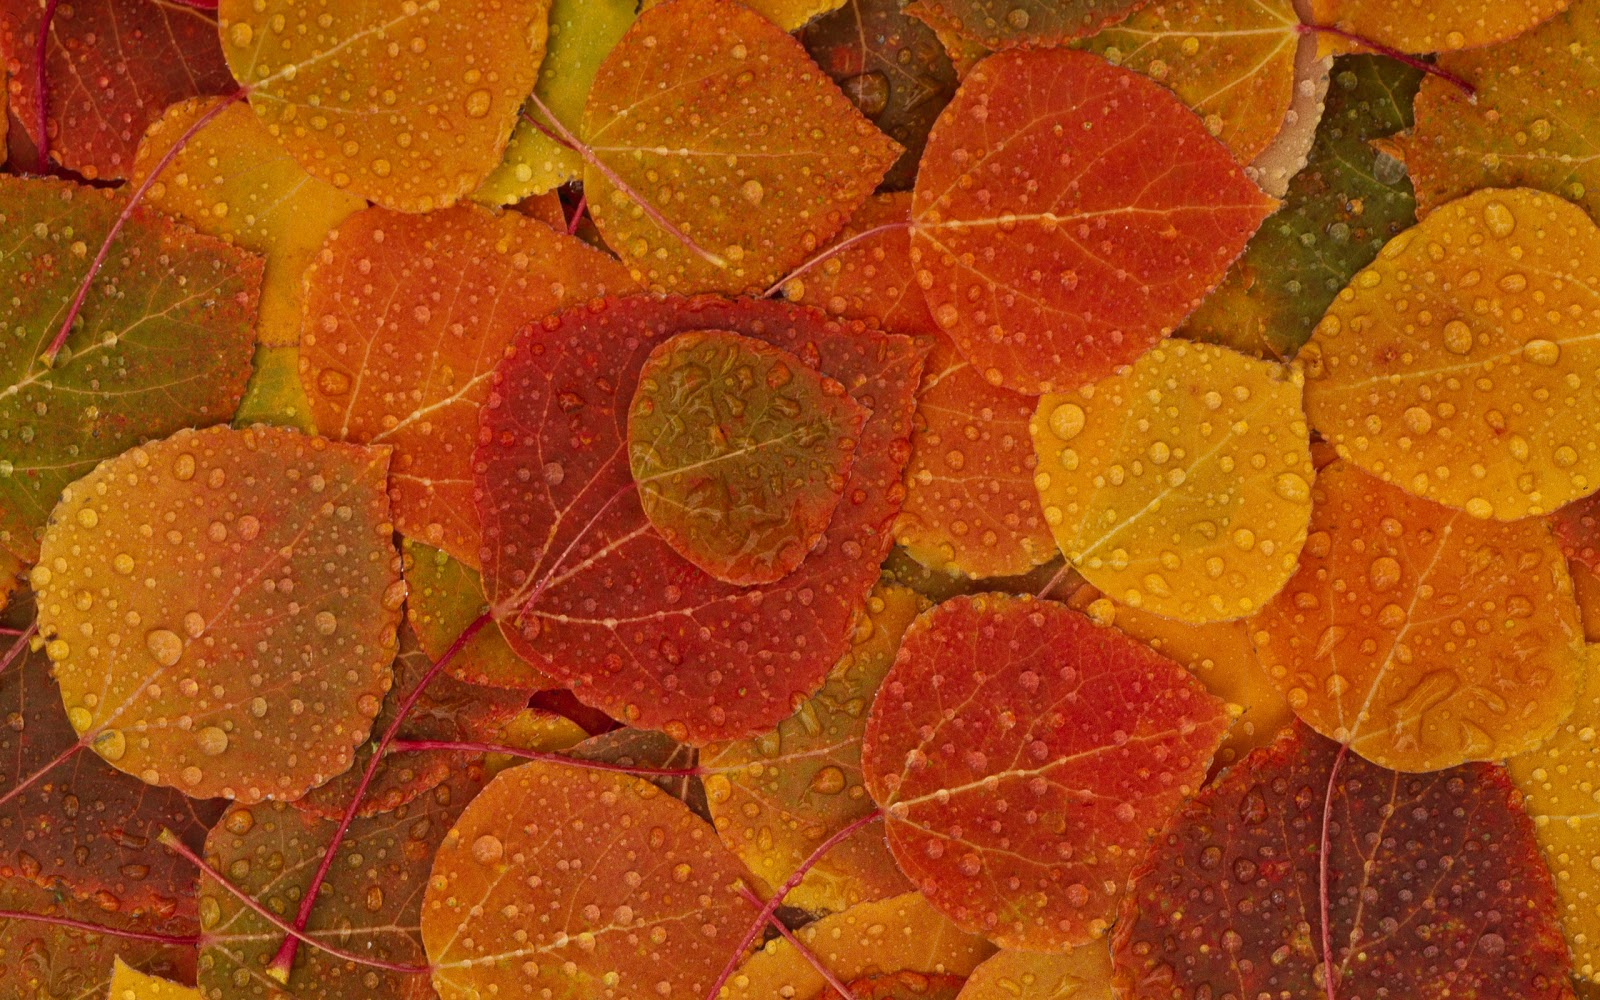 Free Desktop Wallpaper Autumn Leaves: Pemandangan: Autumn Leaves Wallpaper